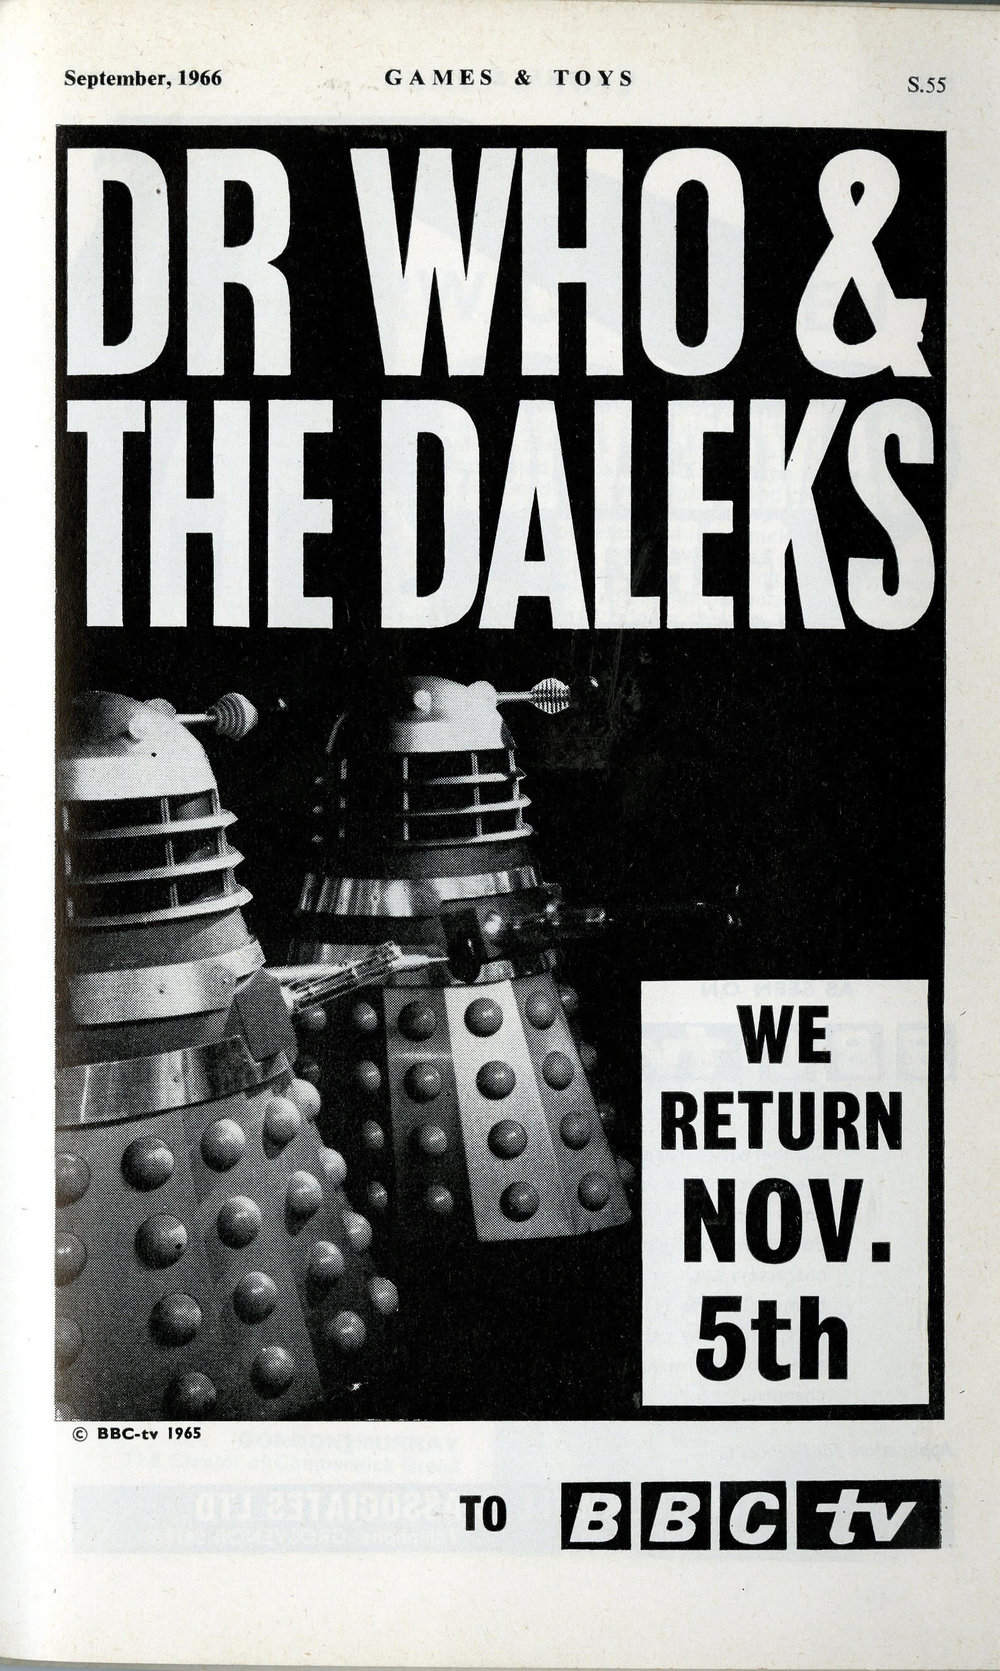 Ad. placed by Walter Tuckwell & Associates in Games & Toys, September 1966, showing the return of the Daleks in Power of the Daleks